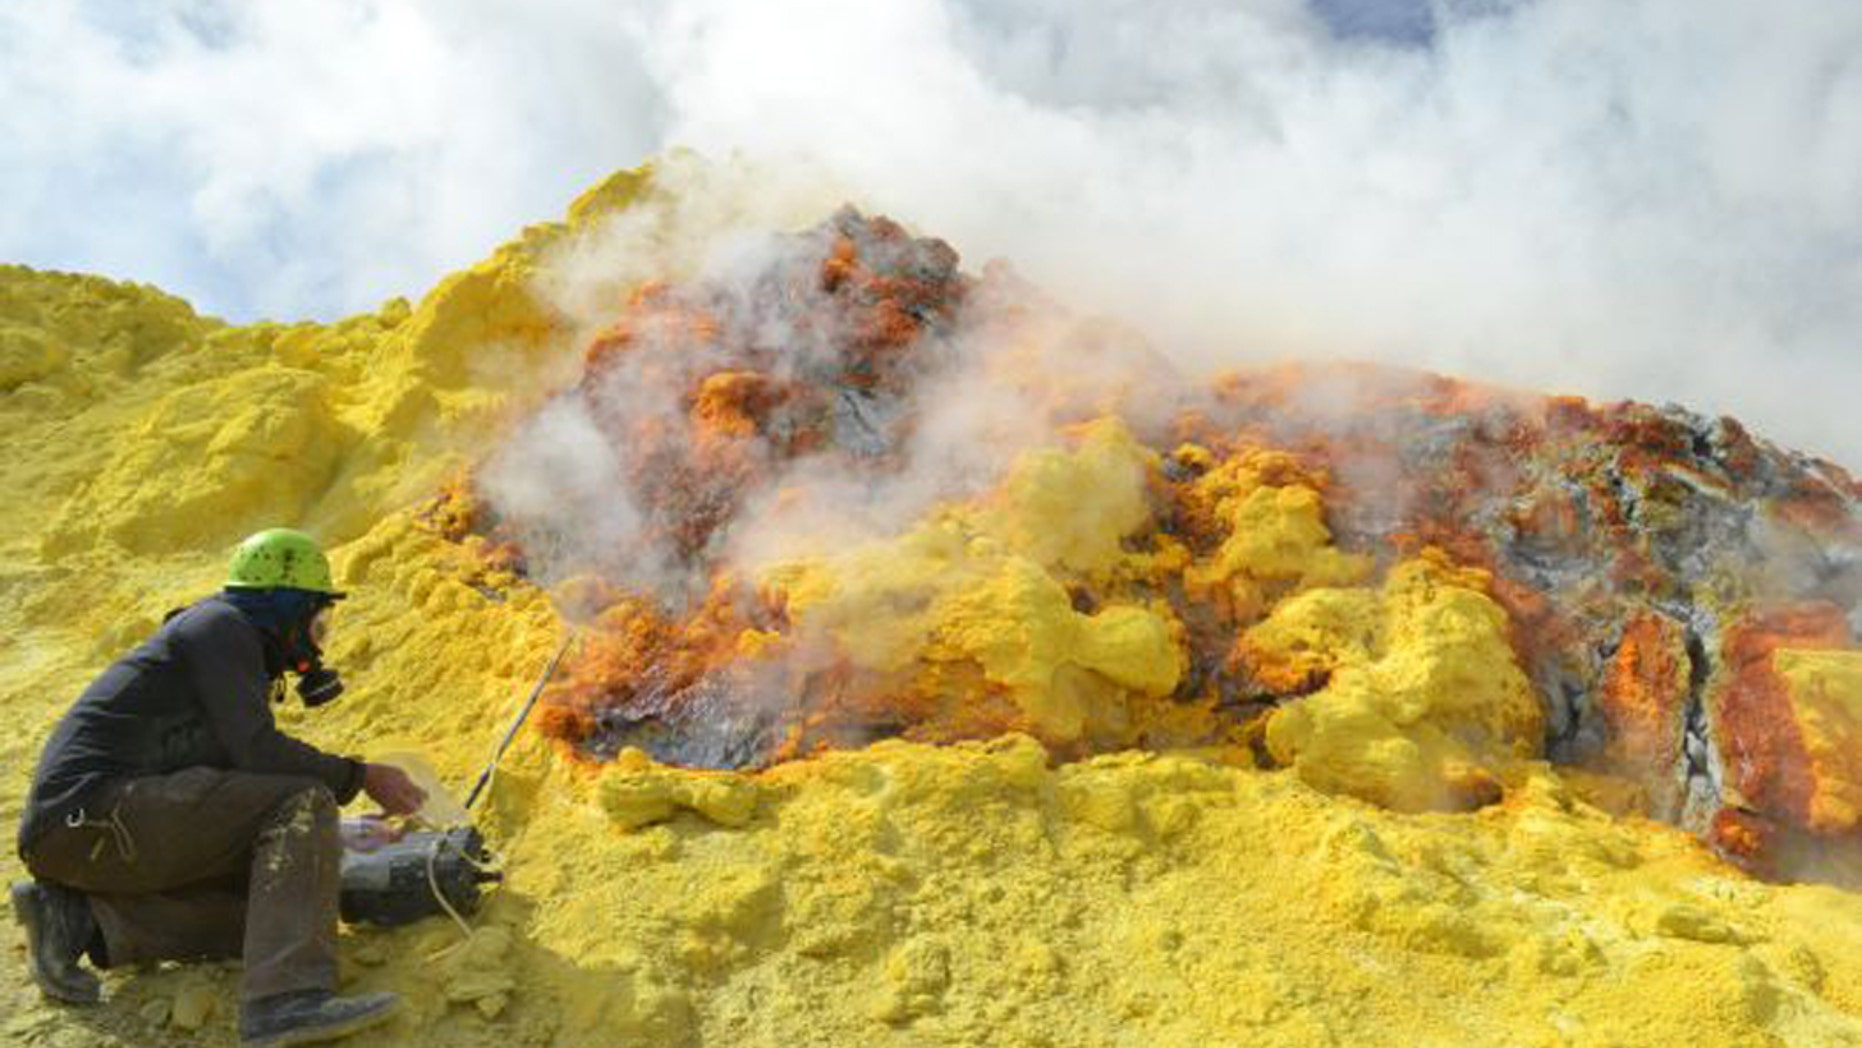 A researcher samples gas emissions released by Lastarria volcano on the border of Chile and Argentina. New research suggests that humans emit about 80 times more CO2 a year than every volcano on Earth combined. (Credit: Yves Moussallam, Lamont Doherty Earth Observatory)